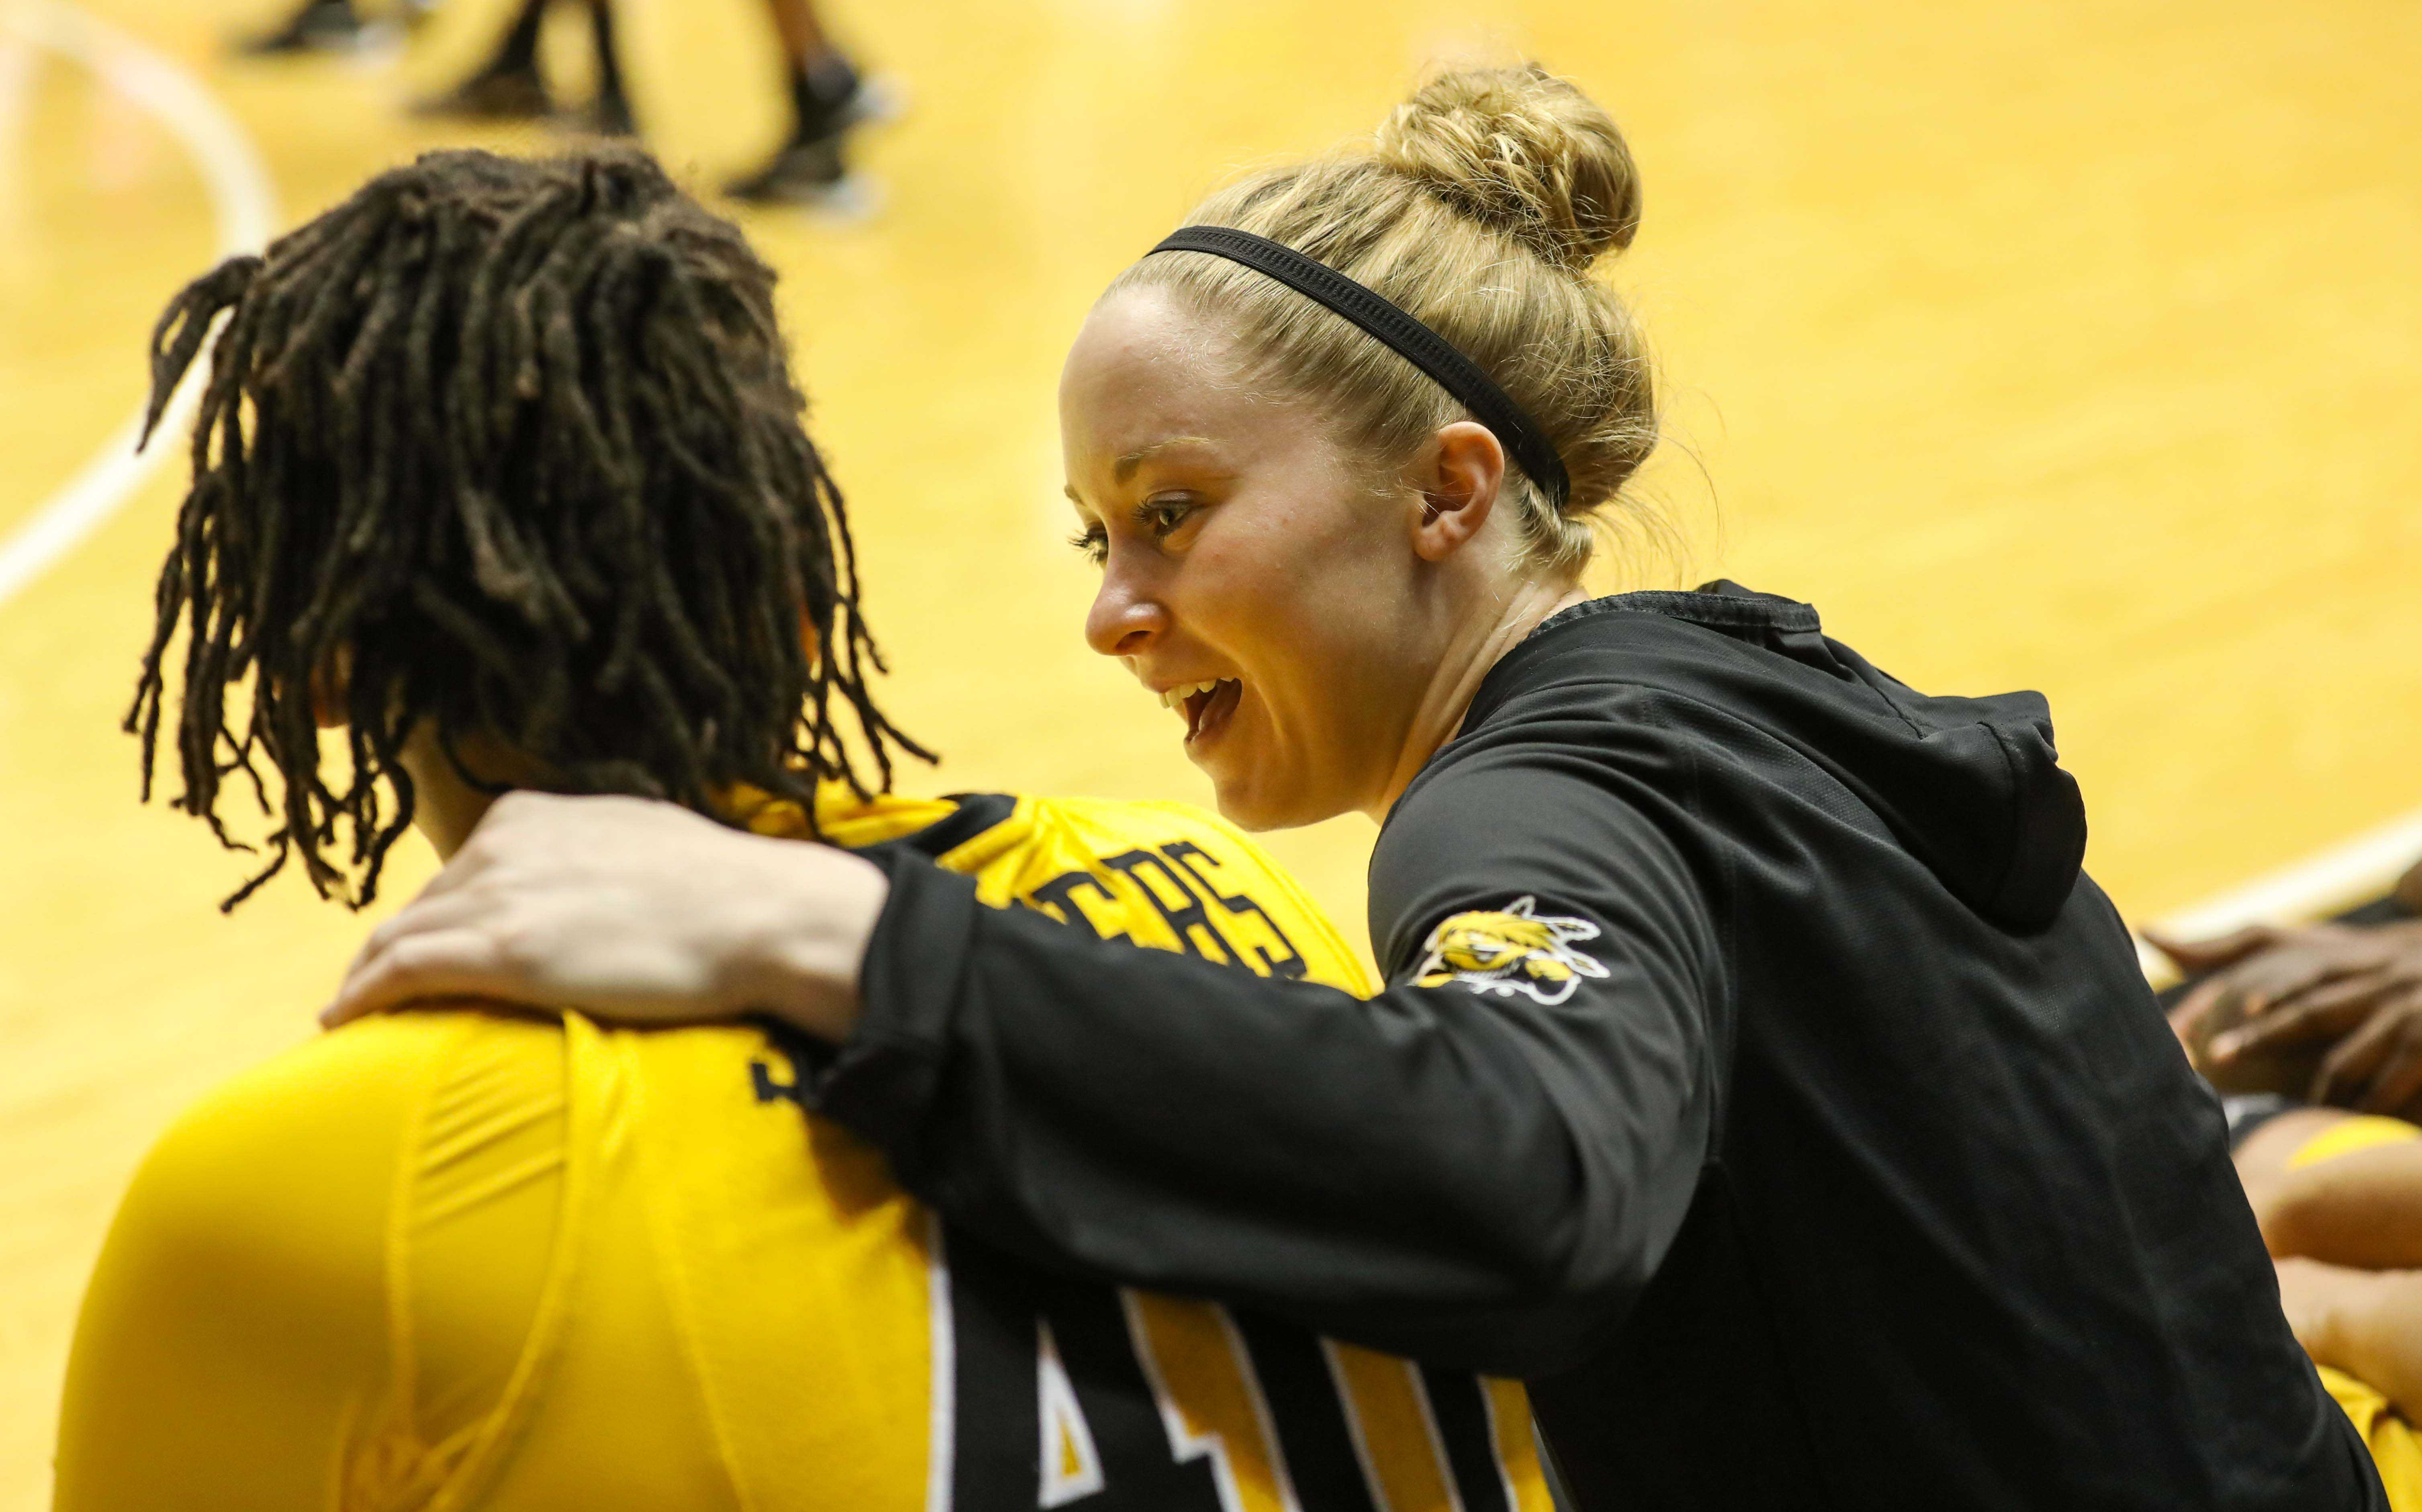 Wichita State senior Hannah Mortimer (2) puts her hand around Angiee Tompkins (40) in the second half of Sunday's game. (Feb. 26, 2017)